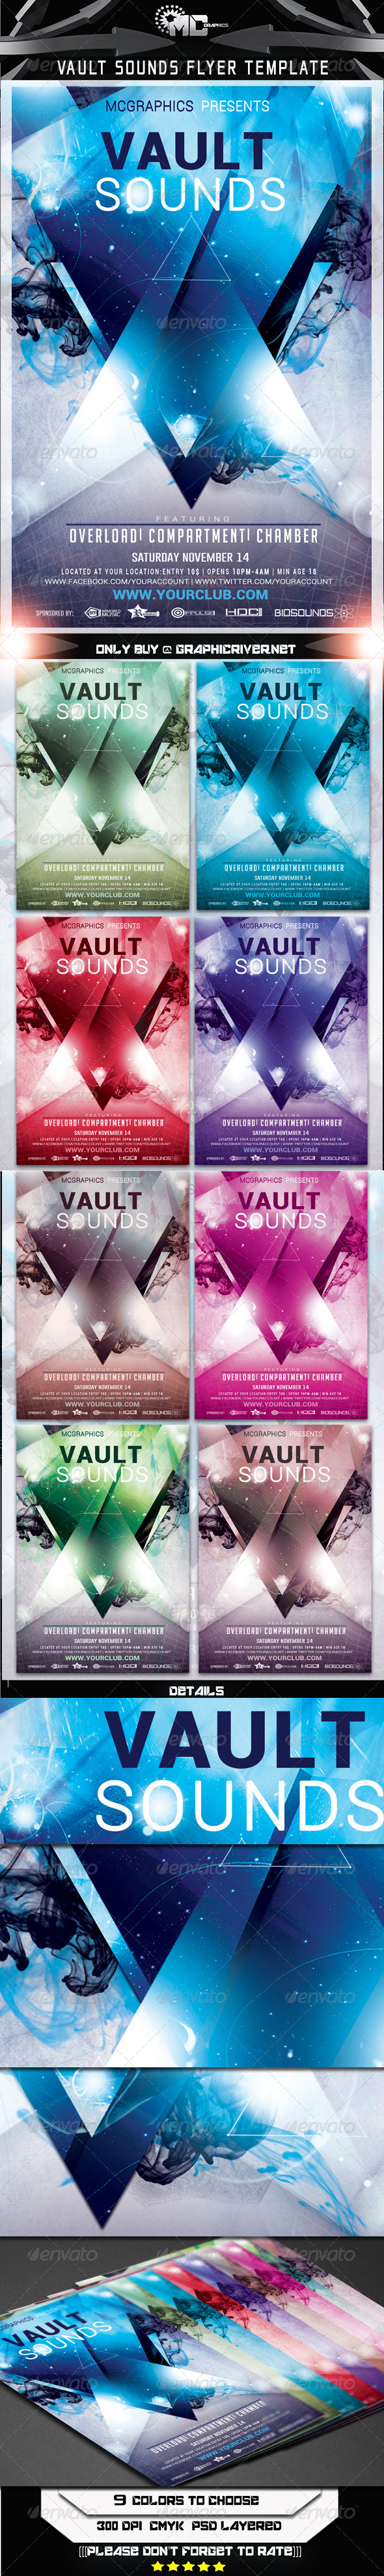 Vault Sounds Flyer Template - Flyers Print Templates